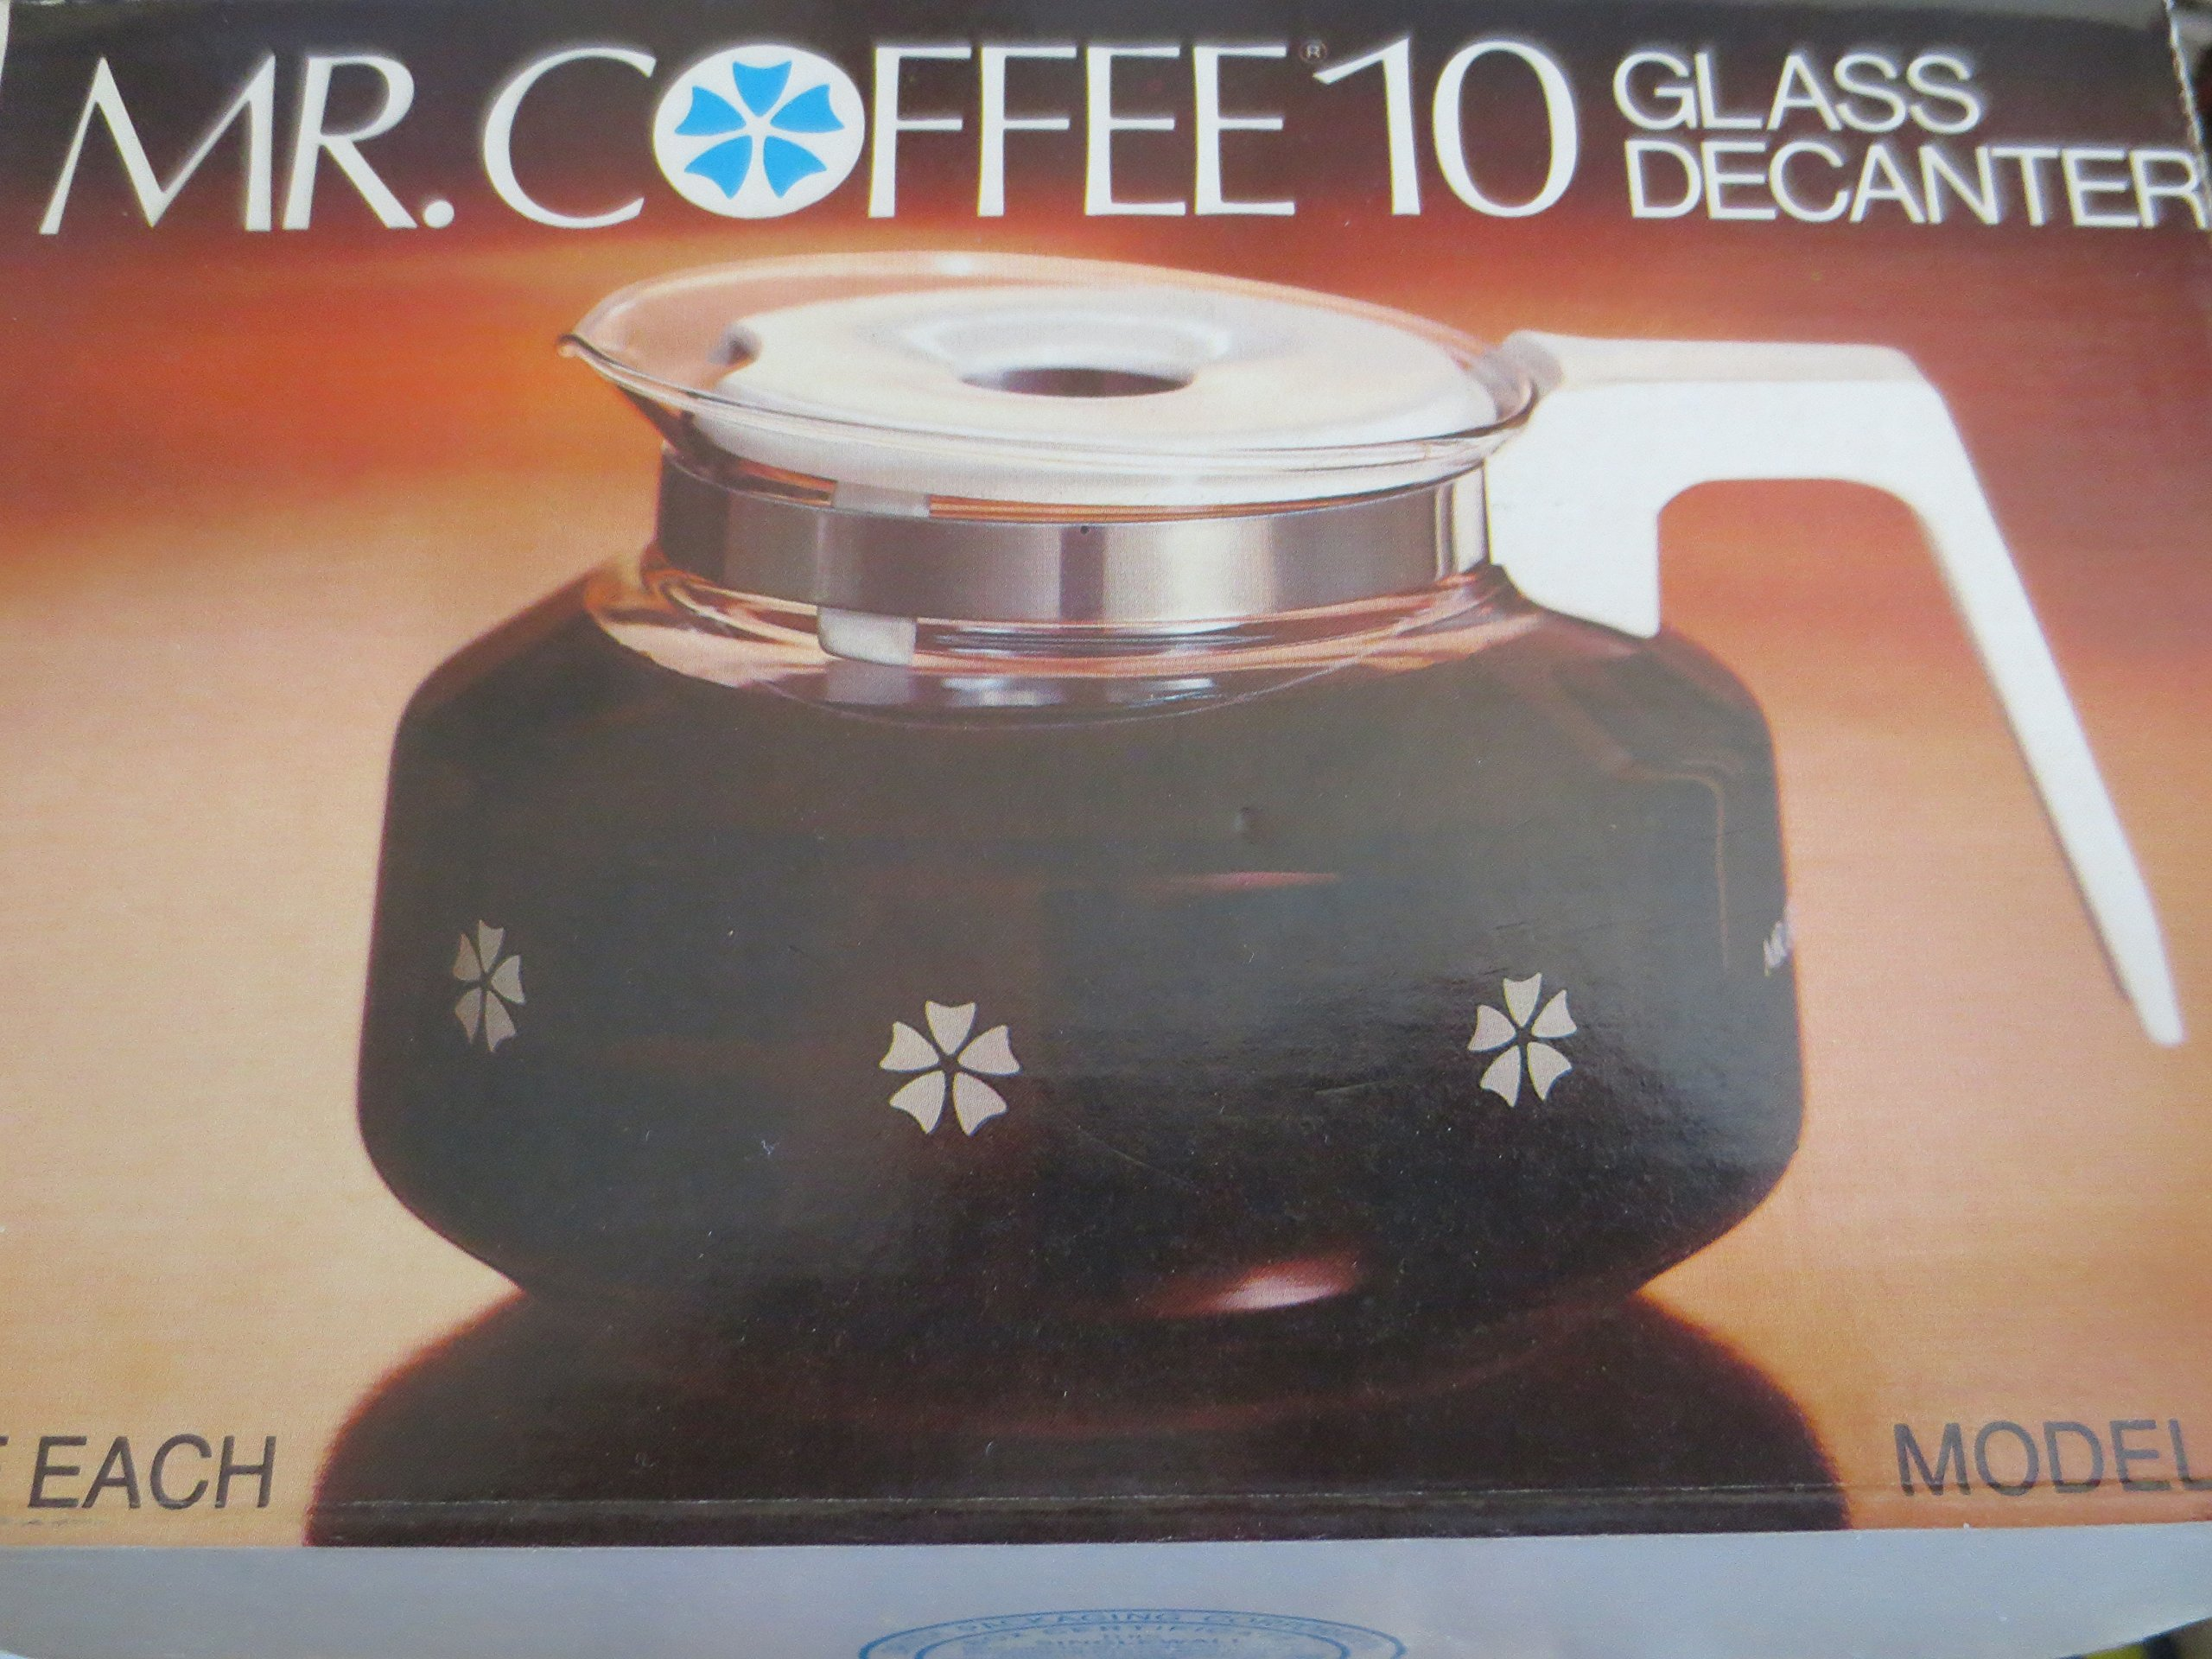 Mr. Coffee 10 Cup Glass Decanter Carafe Model D-7 -- Fits Black & Decker Spacemaker SDC2A, SDC2D, SDC3A, Bunn Pour-Omatic GR, General Electric GE Spacemaker SDC2, SDC3, Norelco C164, C564, CT162, CT663, Dial-A-Brew HB5183, 5184, 5185, 5186, 5186-C, 5187,  by Mr. Coffee